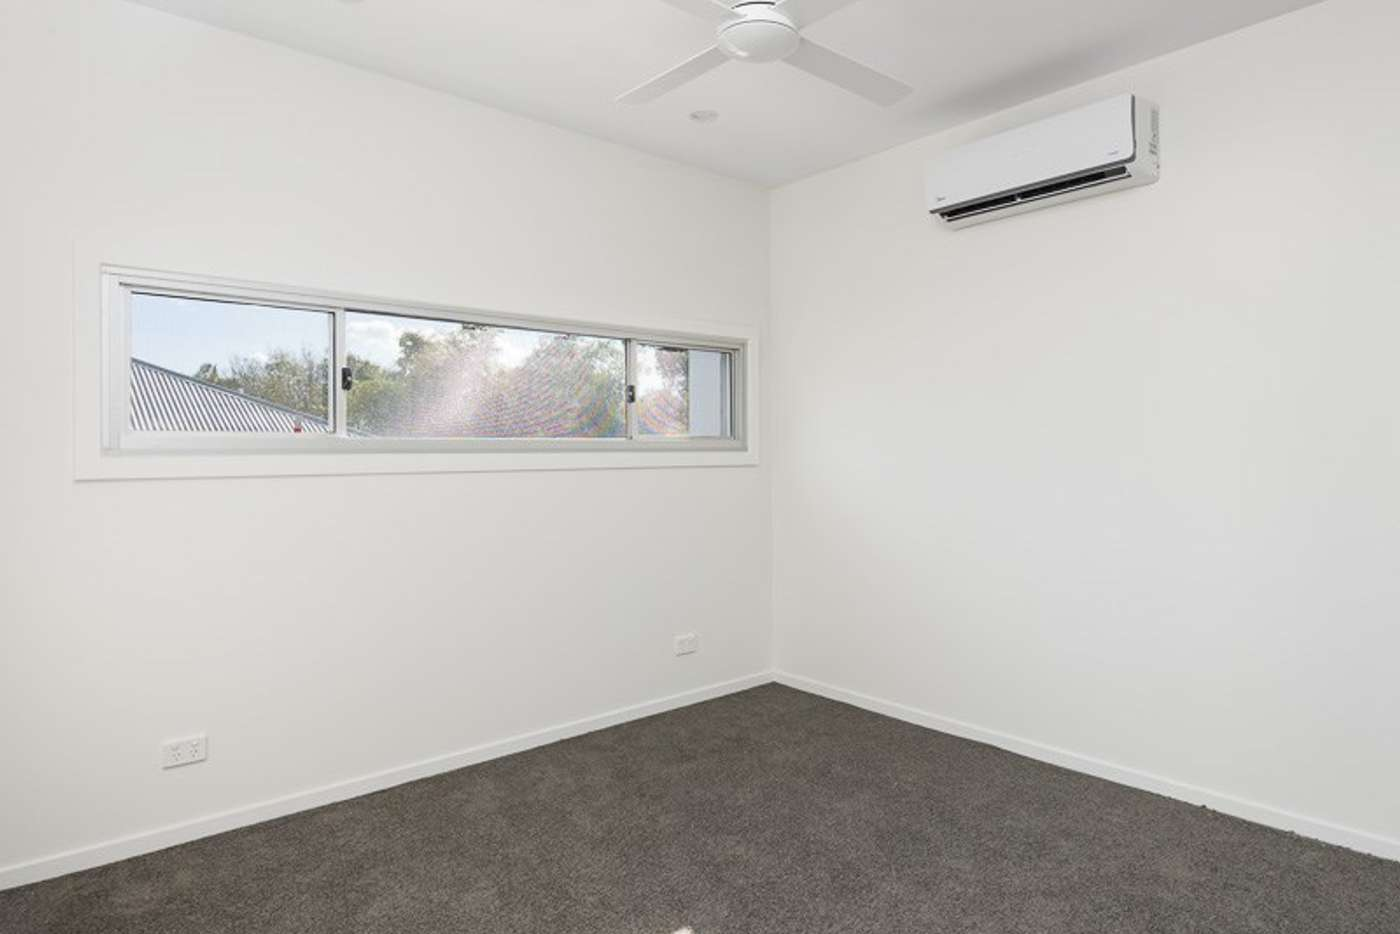 Seventh view of Homely apartment listing, 8/22 Bay Terrace, Wynnum QLD 4178